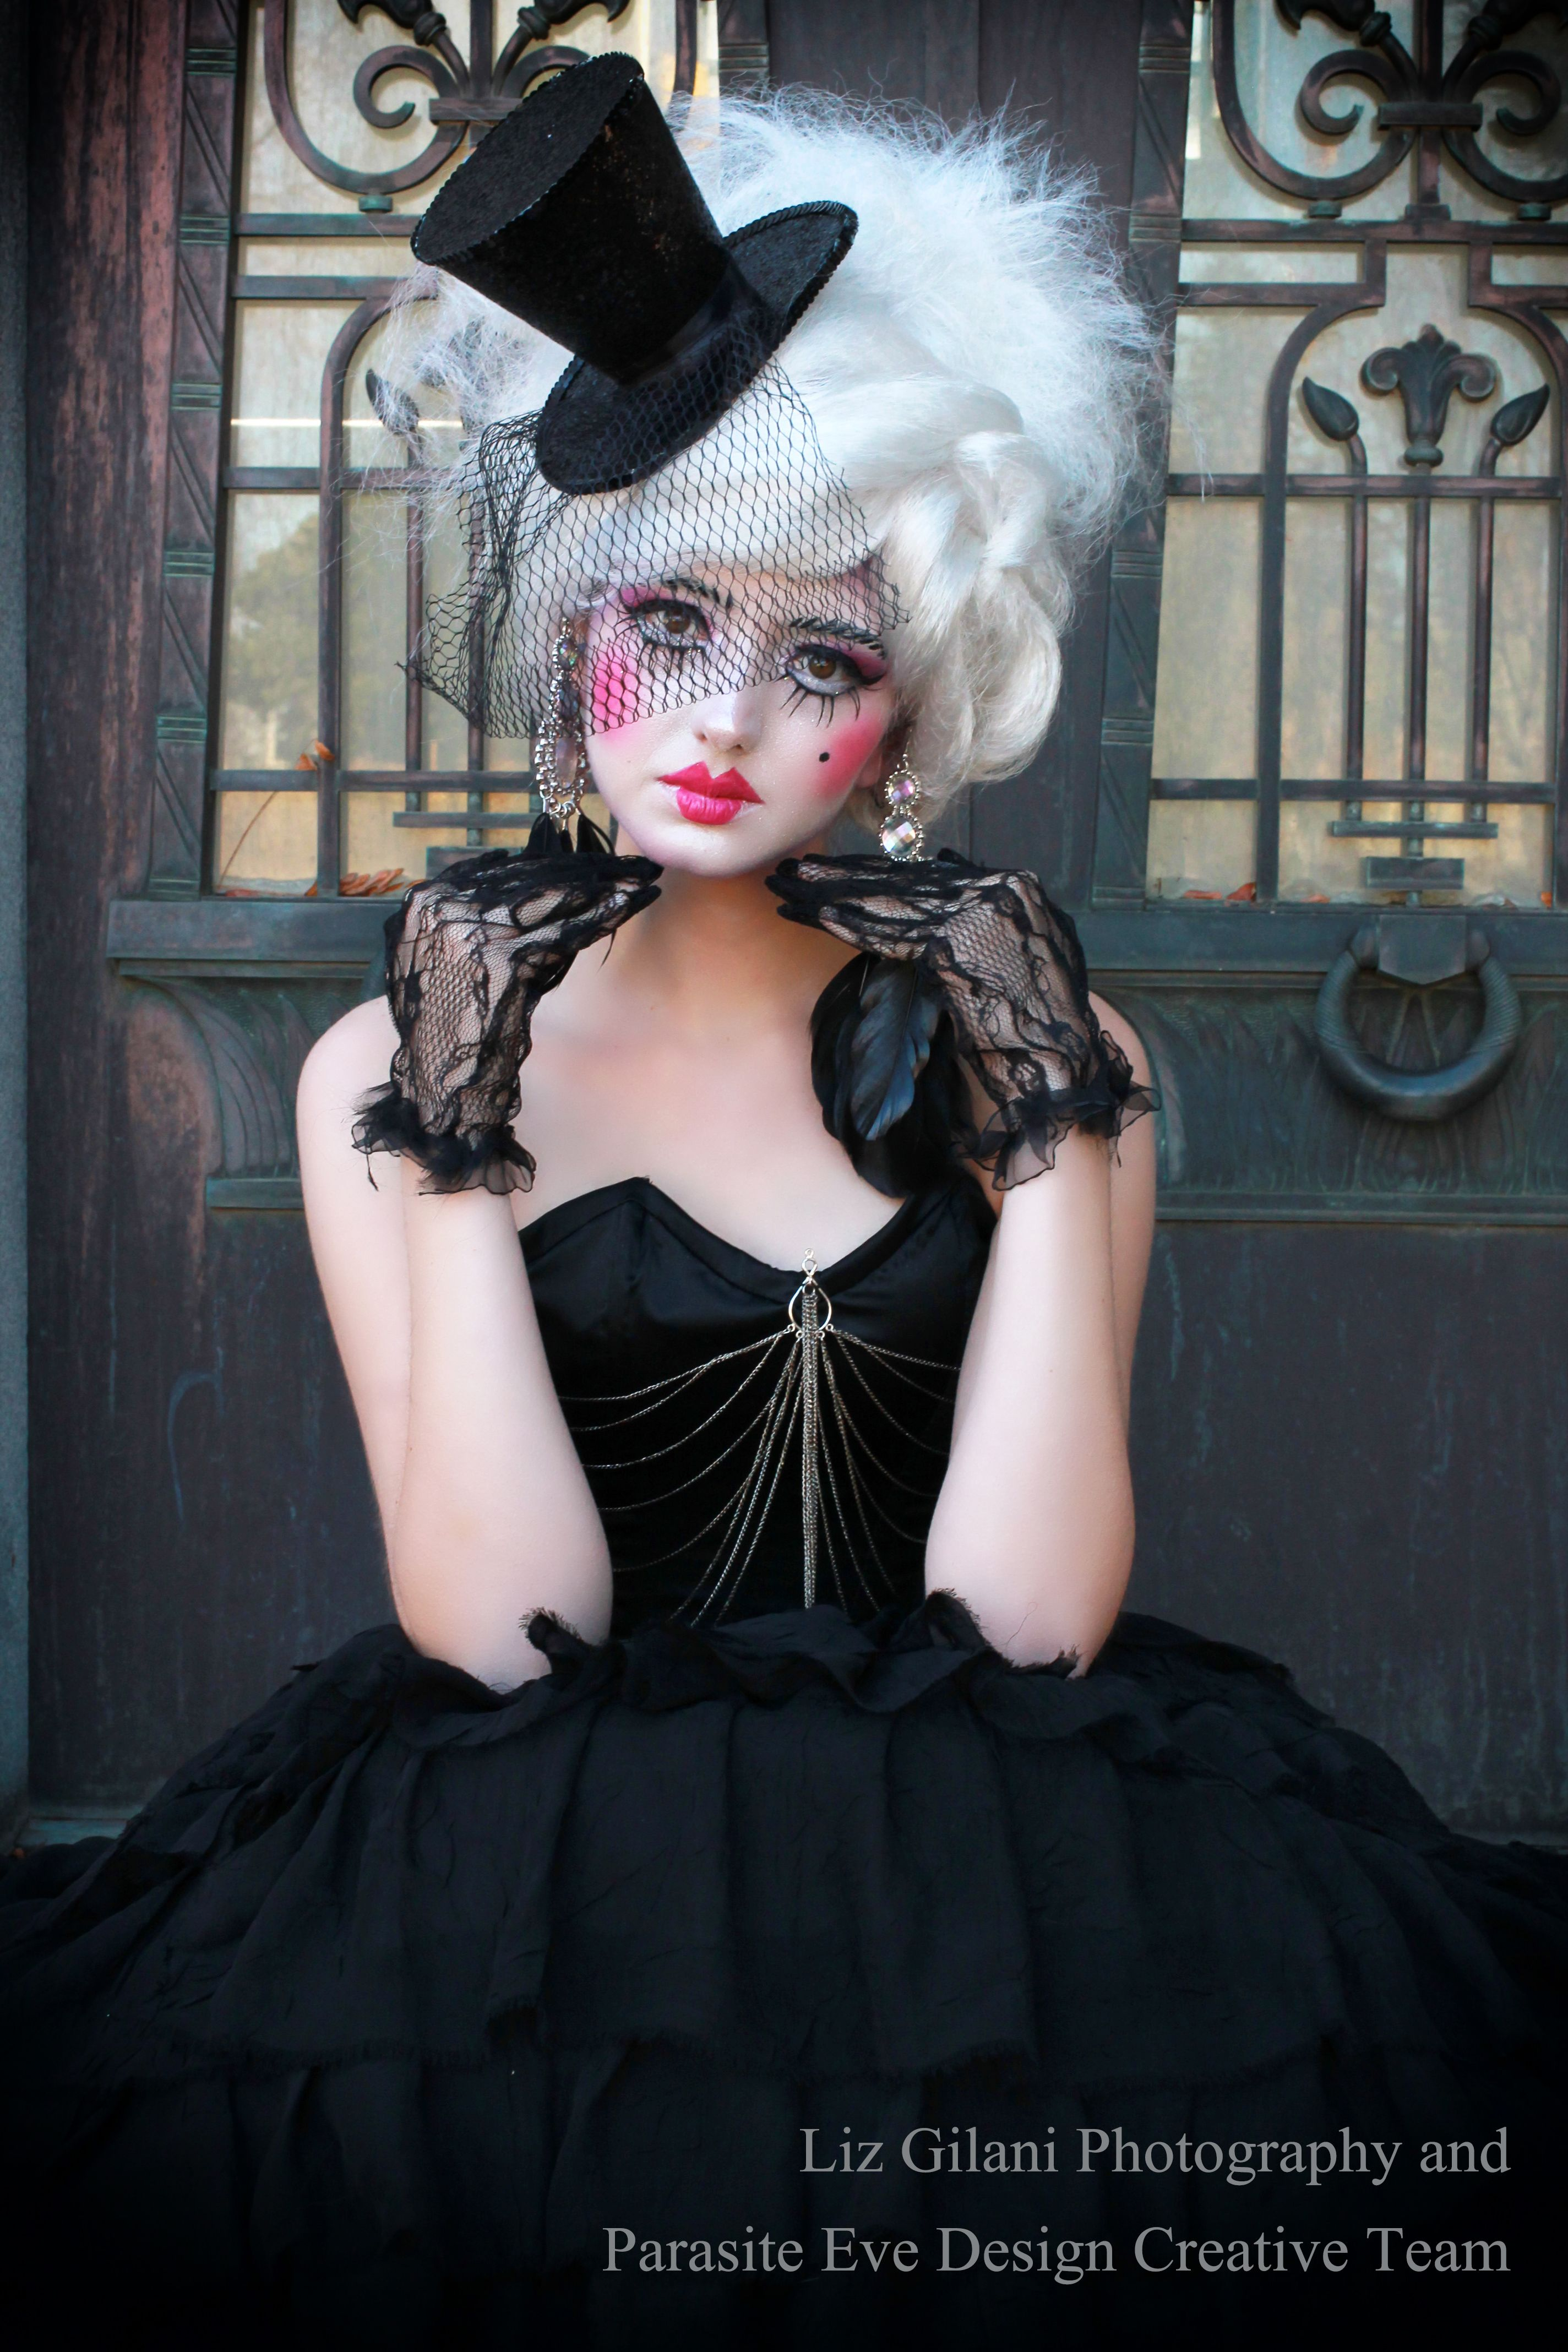 Dreaming Of Porcelain Gothic Doll Themed Shoot From Gothesque Magazine Photography By Liz Gilani